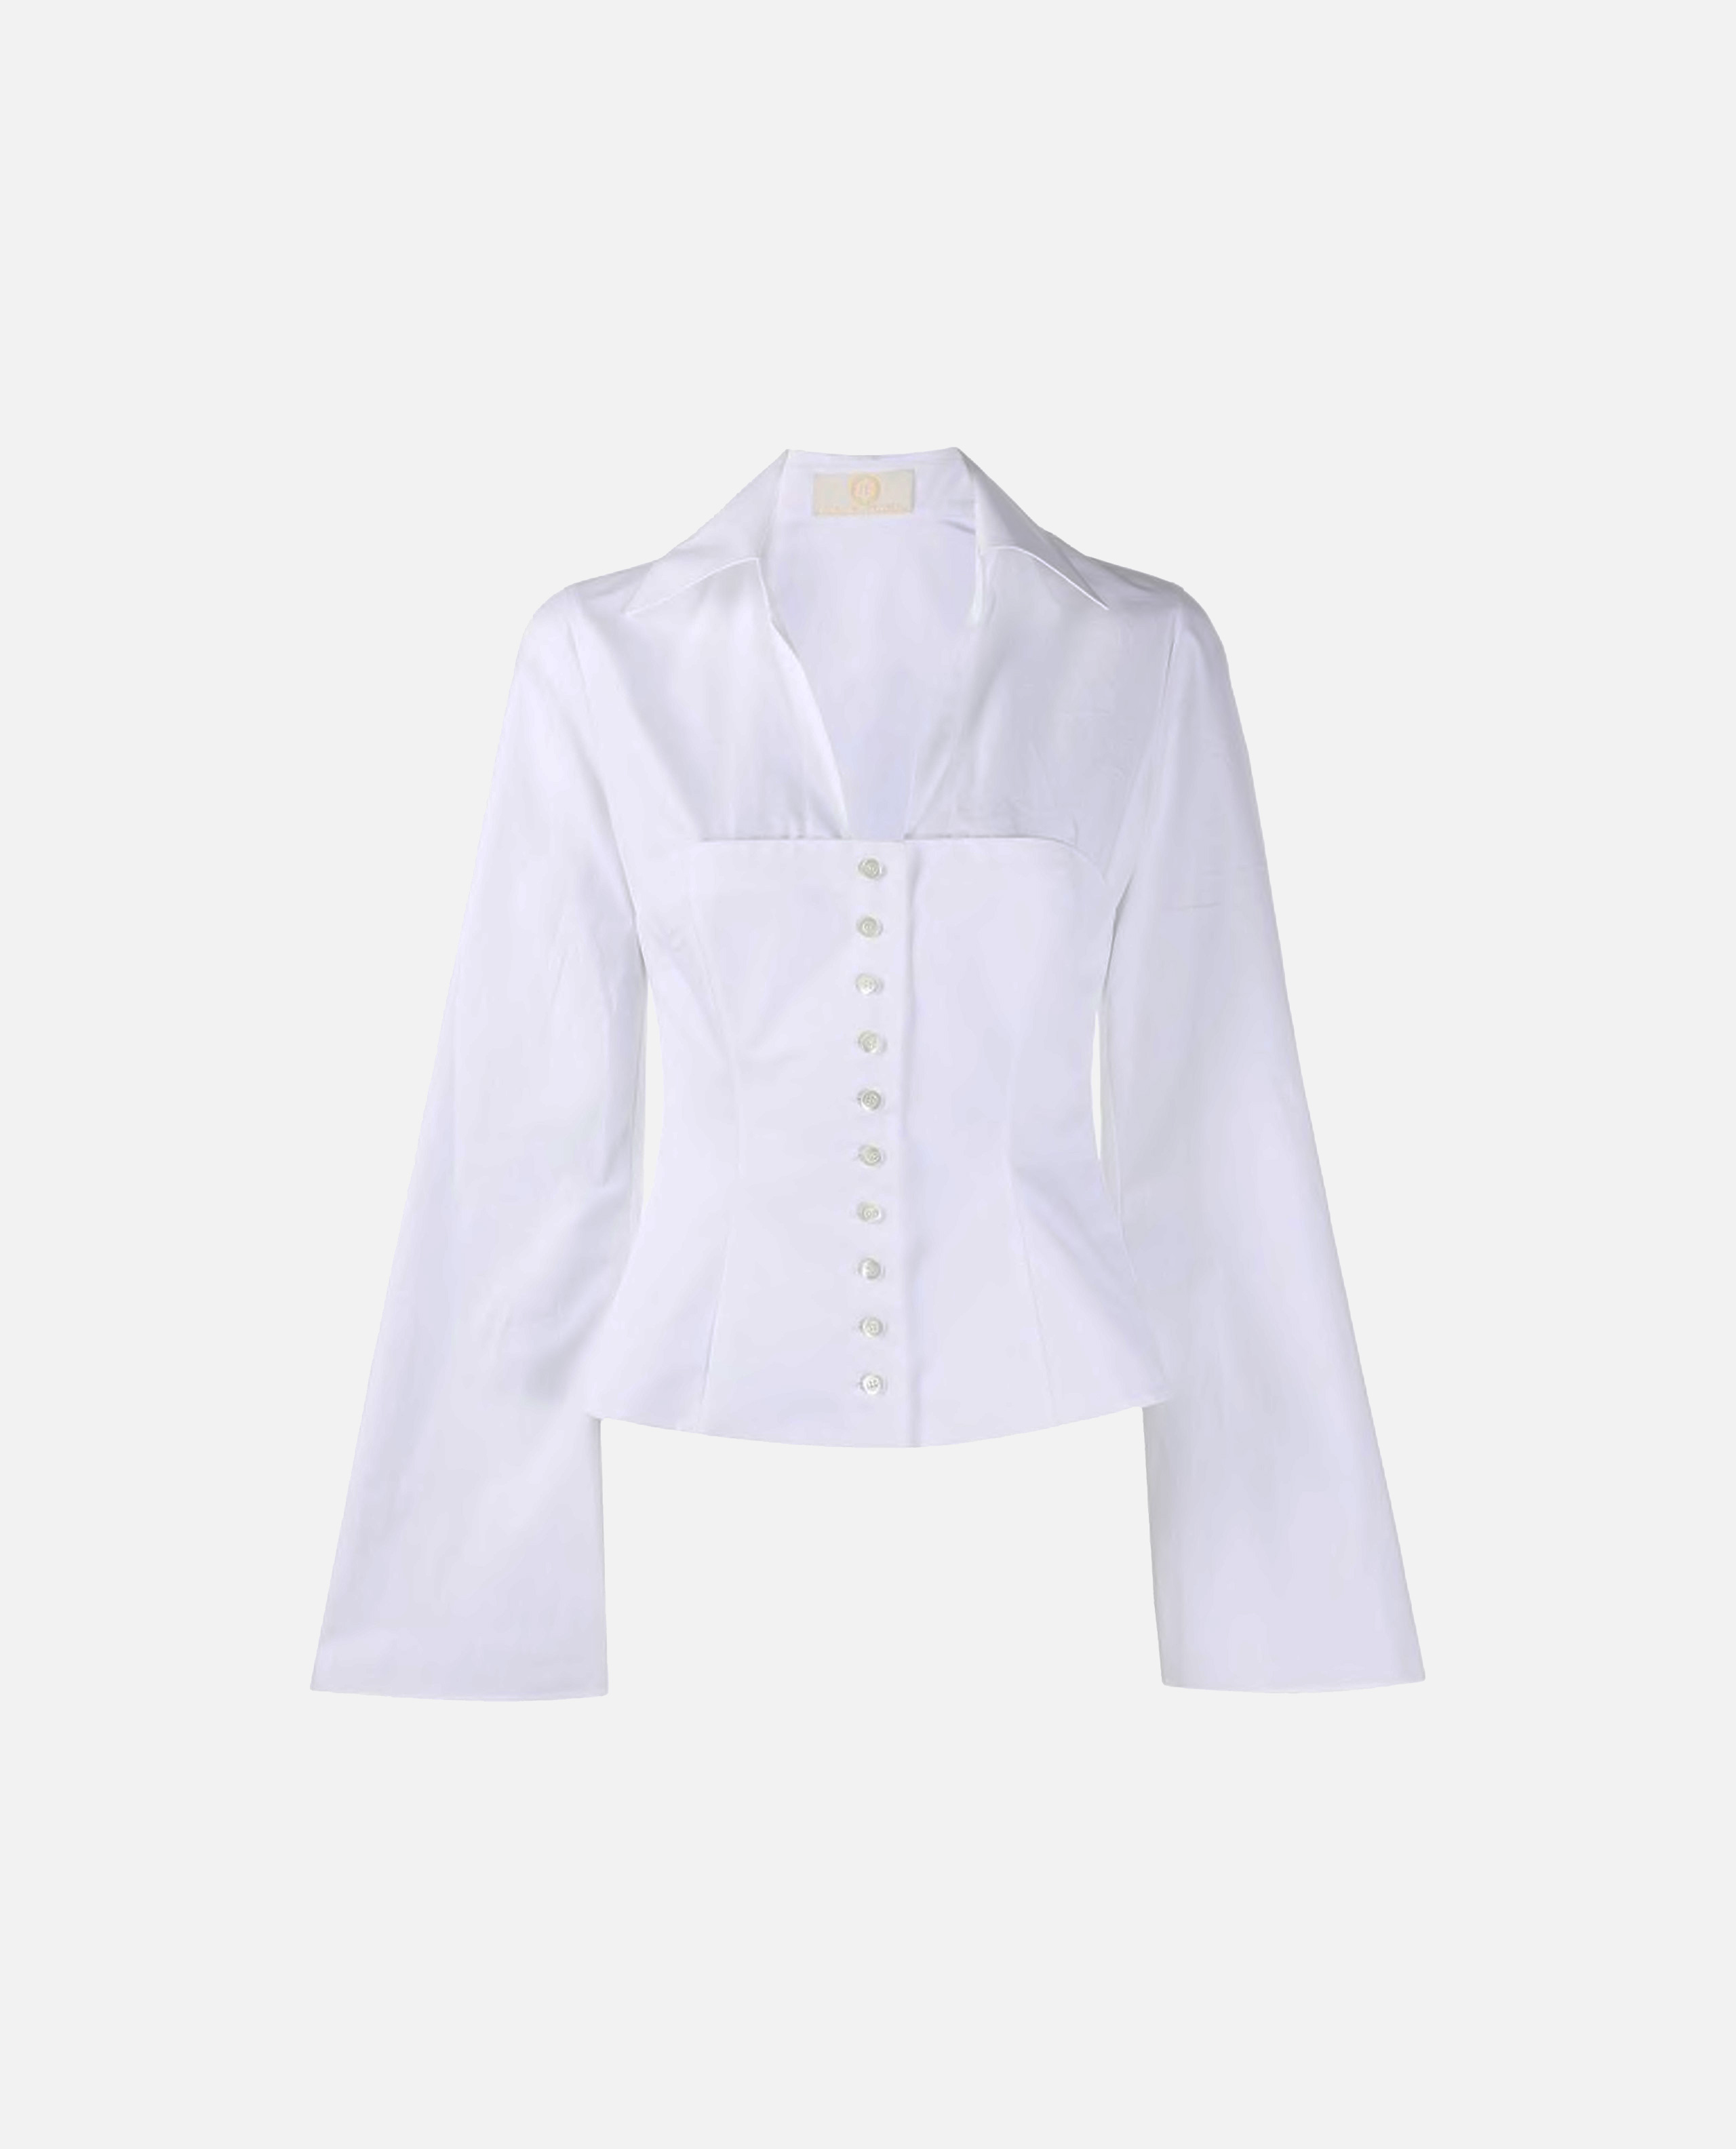 Image of shirt with V-neck